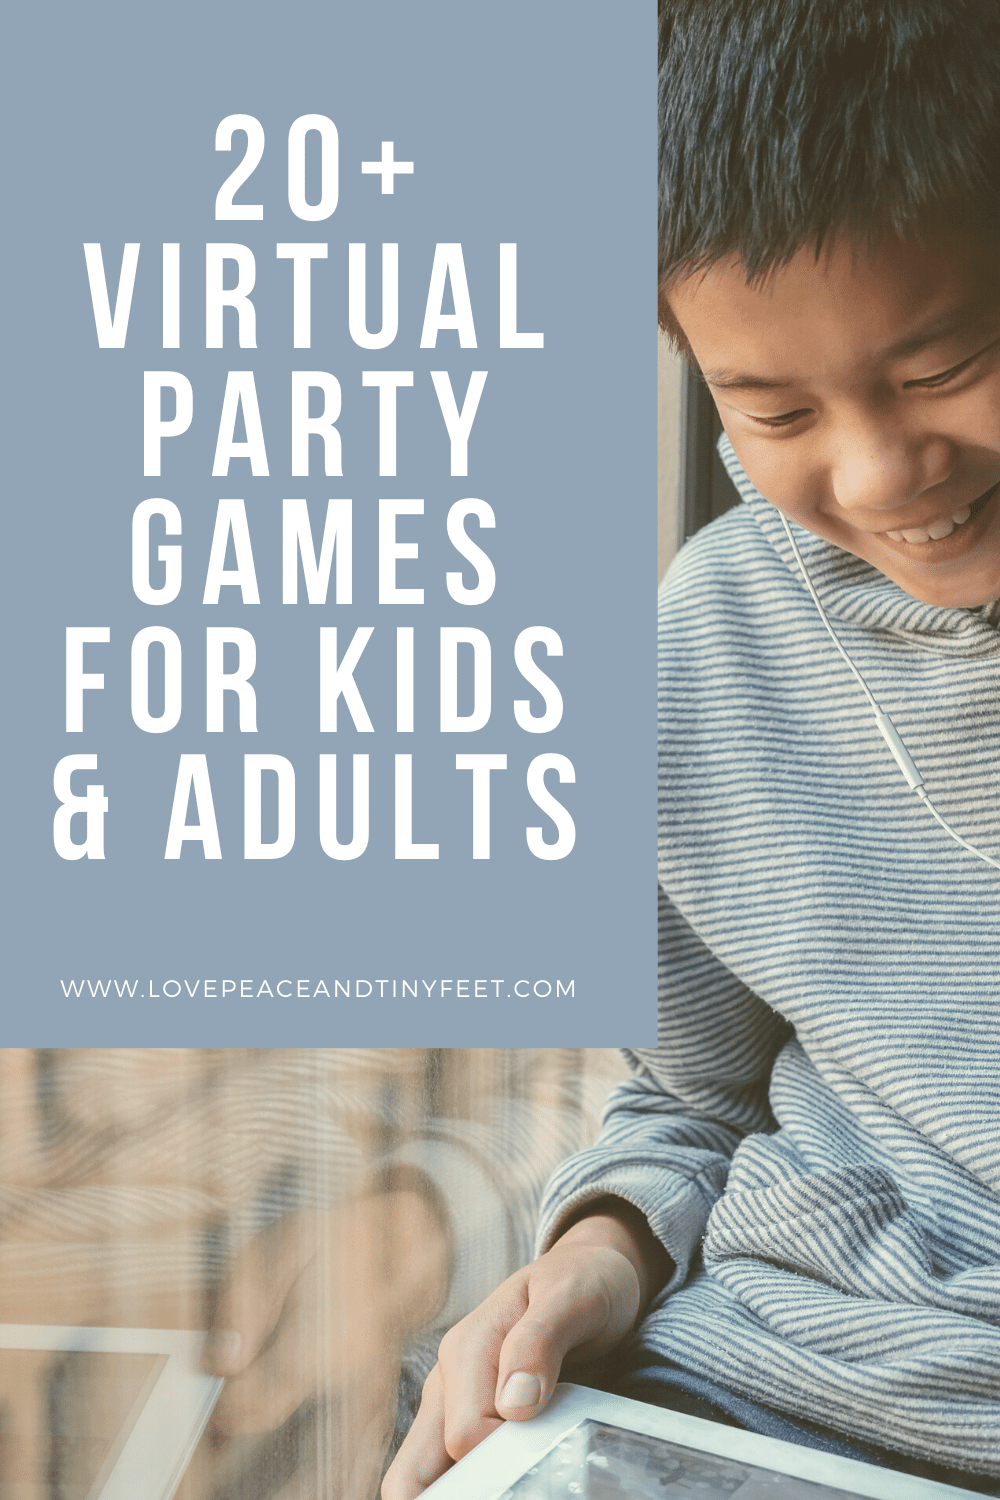 Virtual Parties are a fun way to enjoy the company of friends while social distancing.Here's a list of fun virtual party games for kids and adults.